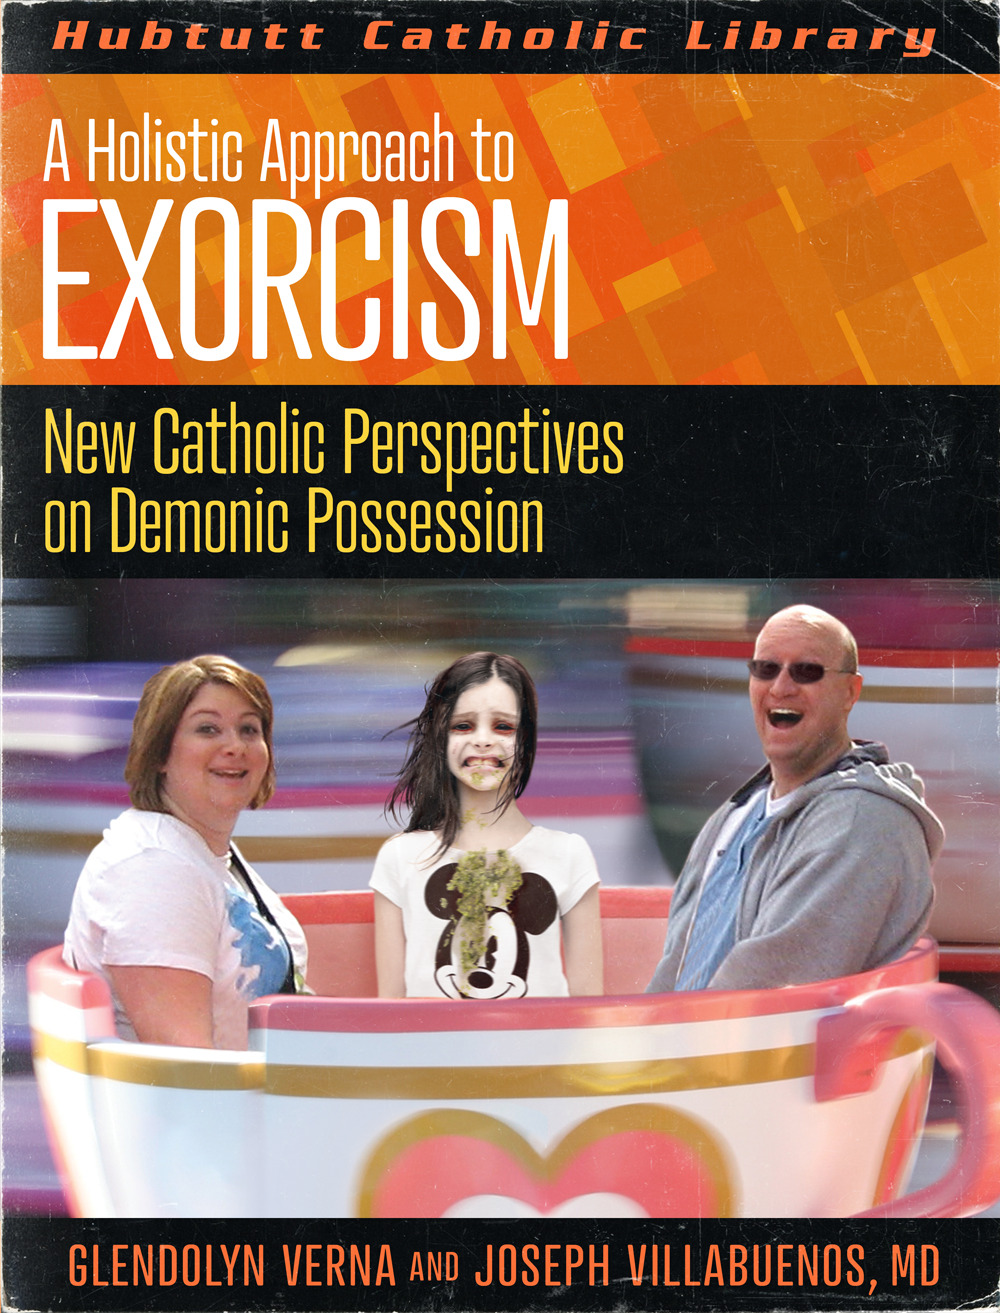 A Holistic Approach to Exorcism: New Catholic Perspectives on Demonic Possession by Glendolyn Verna and Joseph Villabuenos, MD